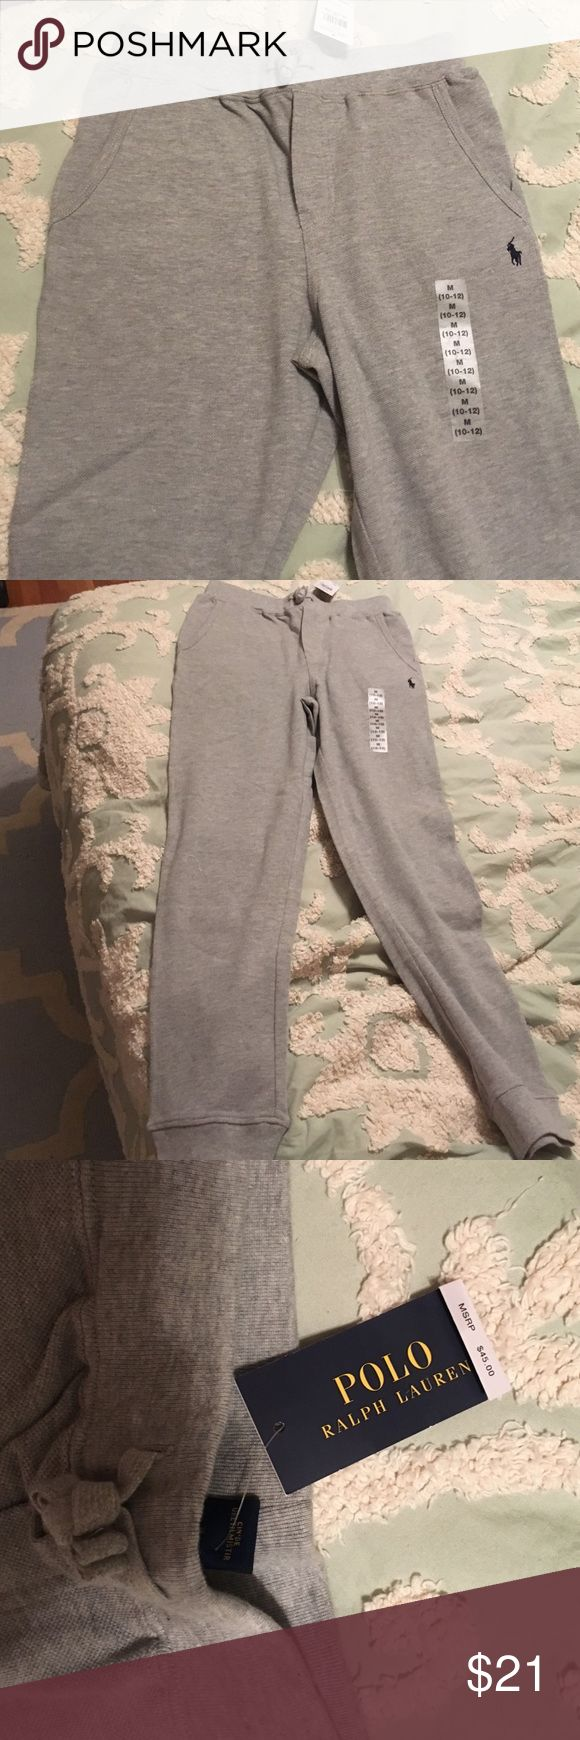 brand-new polo sweatpants Gray comfortable brand-new tags still on polo pants medium size 10/12 boys Polo by Ralph Lauren Bottoms Sweatpants & Joggers